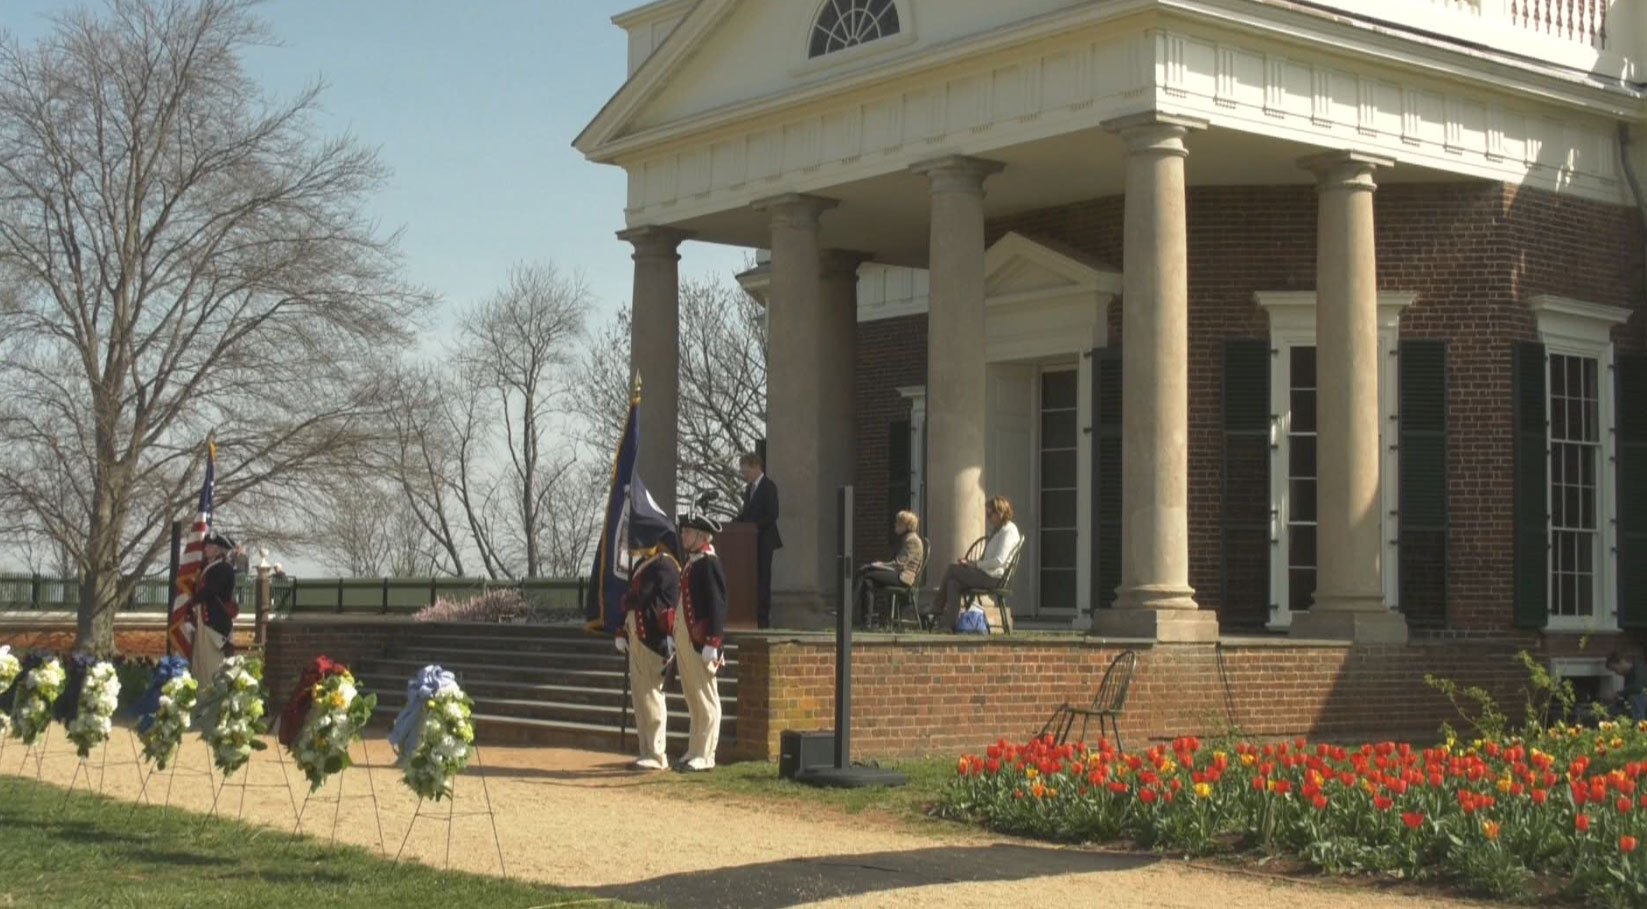 Actors dressed in American Revolution-era garb mark Thomas Jefferson's 275th birthday in a ceremony at Jefferson's home, Monticello. WVIR-TV Channel 29 image